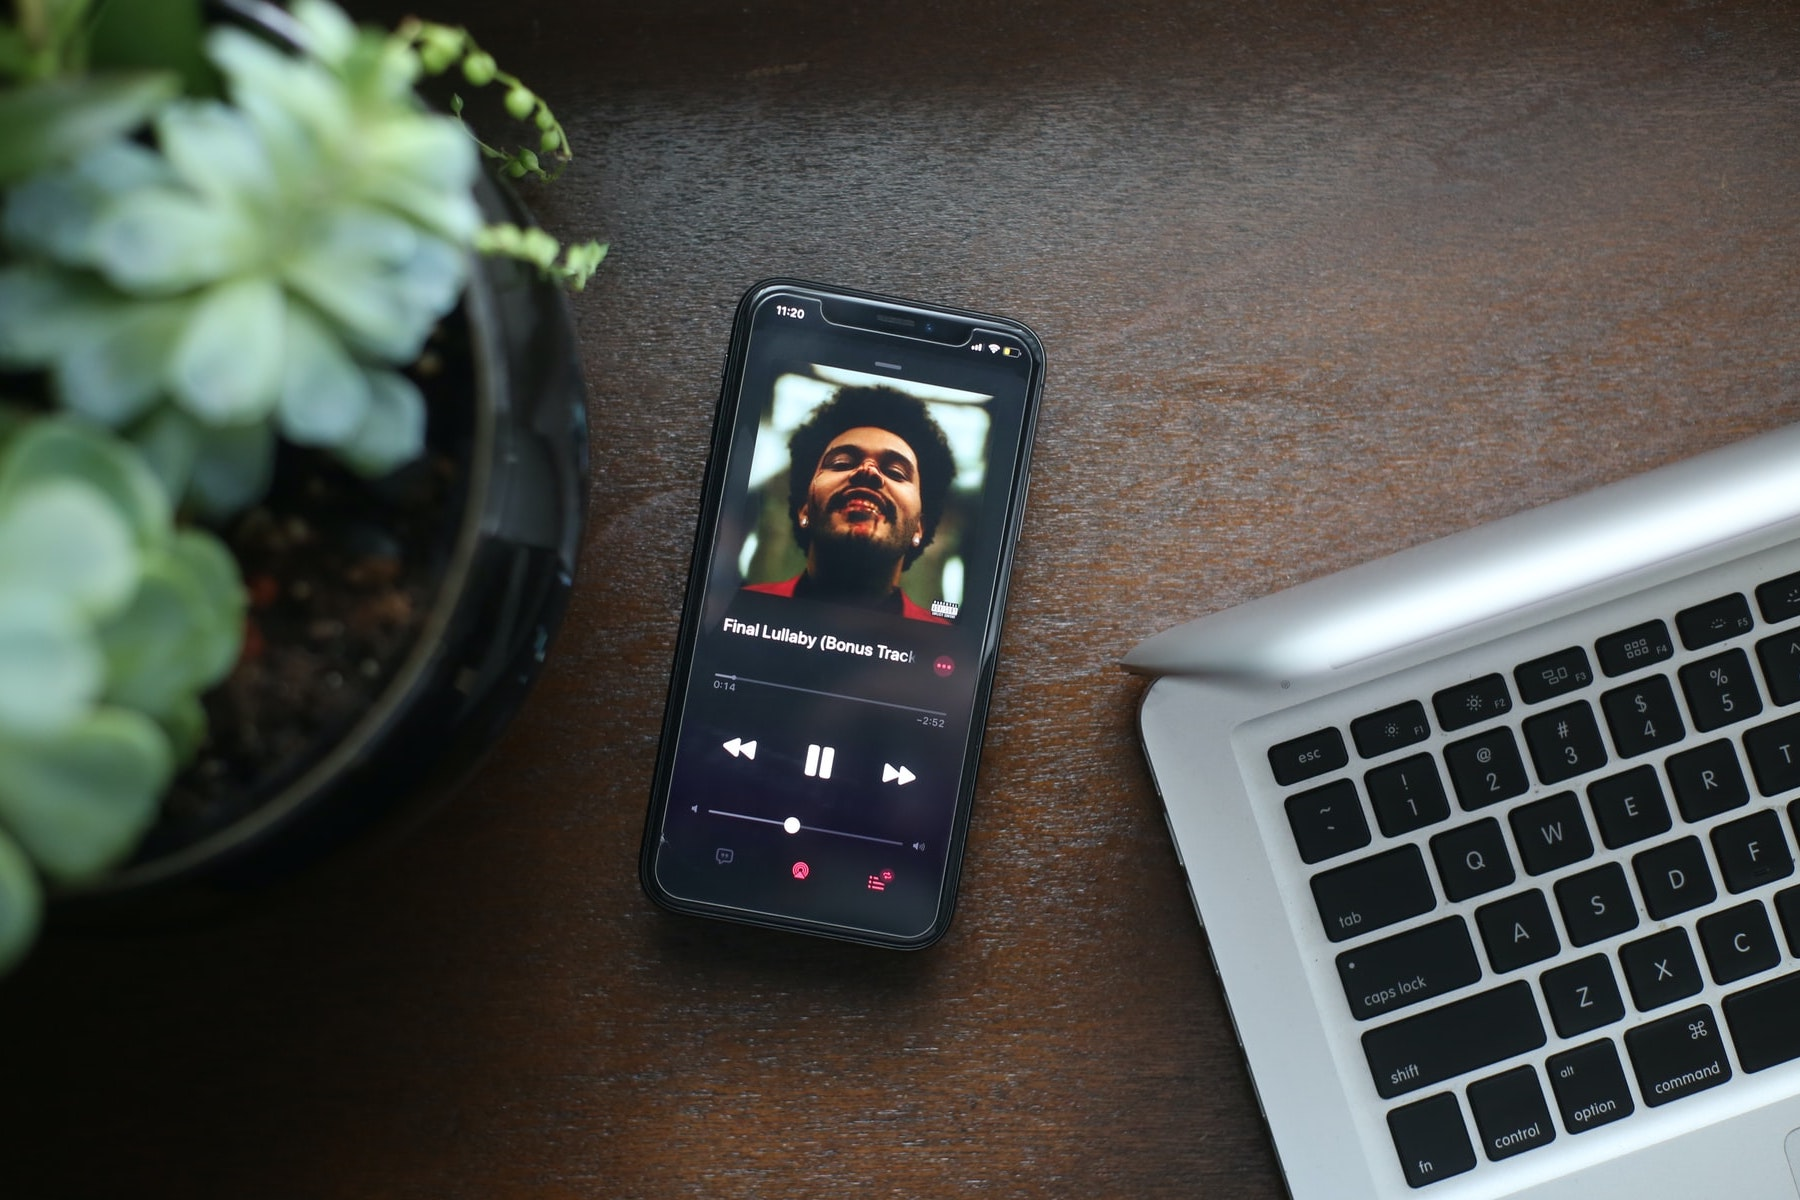 A photo of one of The Weeknd's songs for an article about him being compared to Michael Jackson. (Photo by Giorgio Trovato from Unsplash)